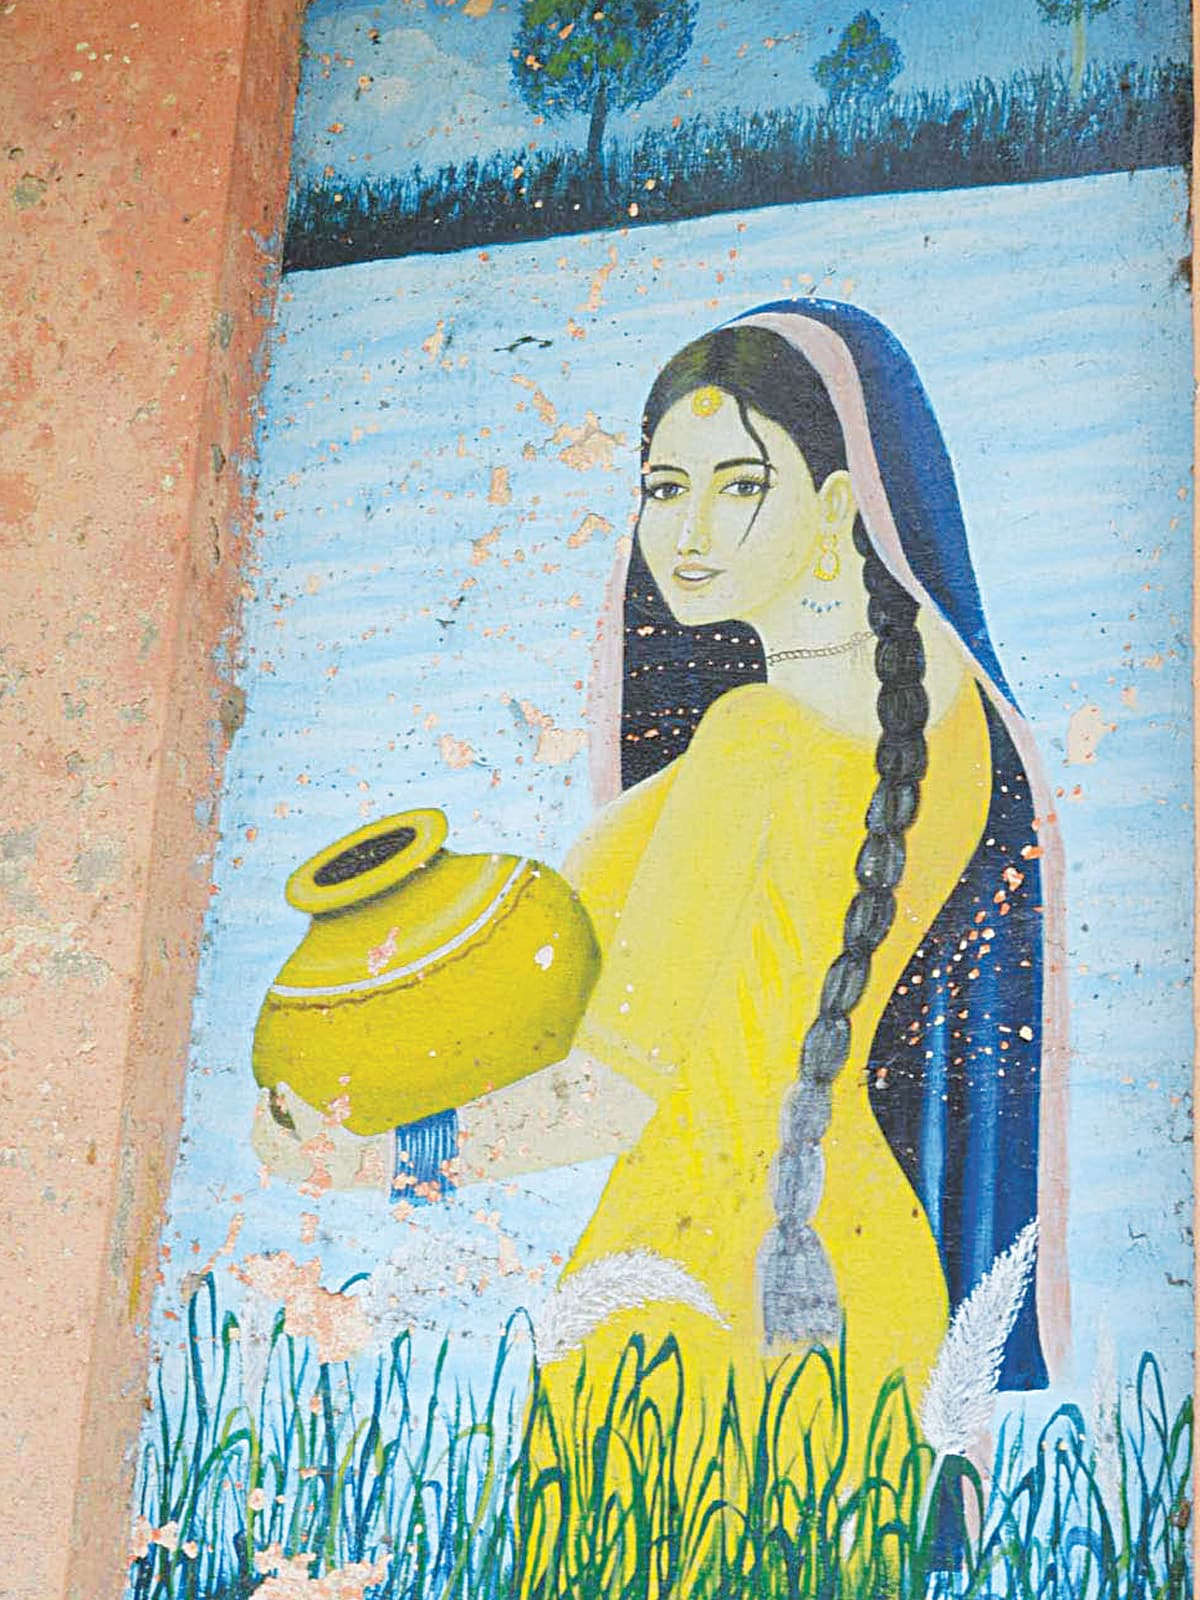 A painting from a Punjabi folk tale adorns the walls of Khoj Garh | Azhar Jafri, Wihte Star